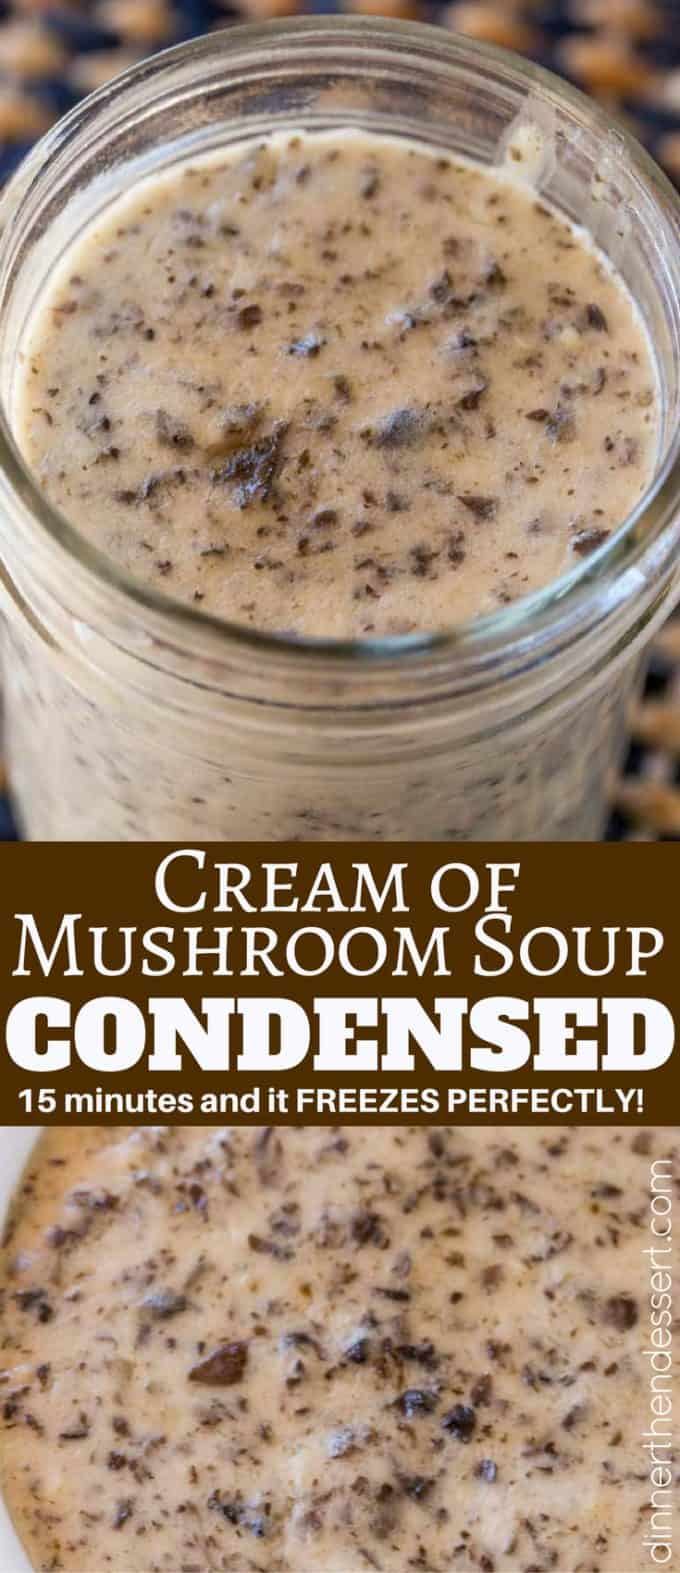 Cream of Mushroom Soup sounds like a basic ingredient in a casserole but making it from scratch is really easy and it freezes great. Perfect for all your condensed soup recipes!